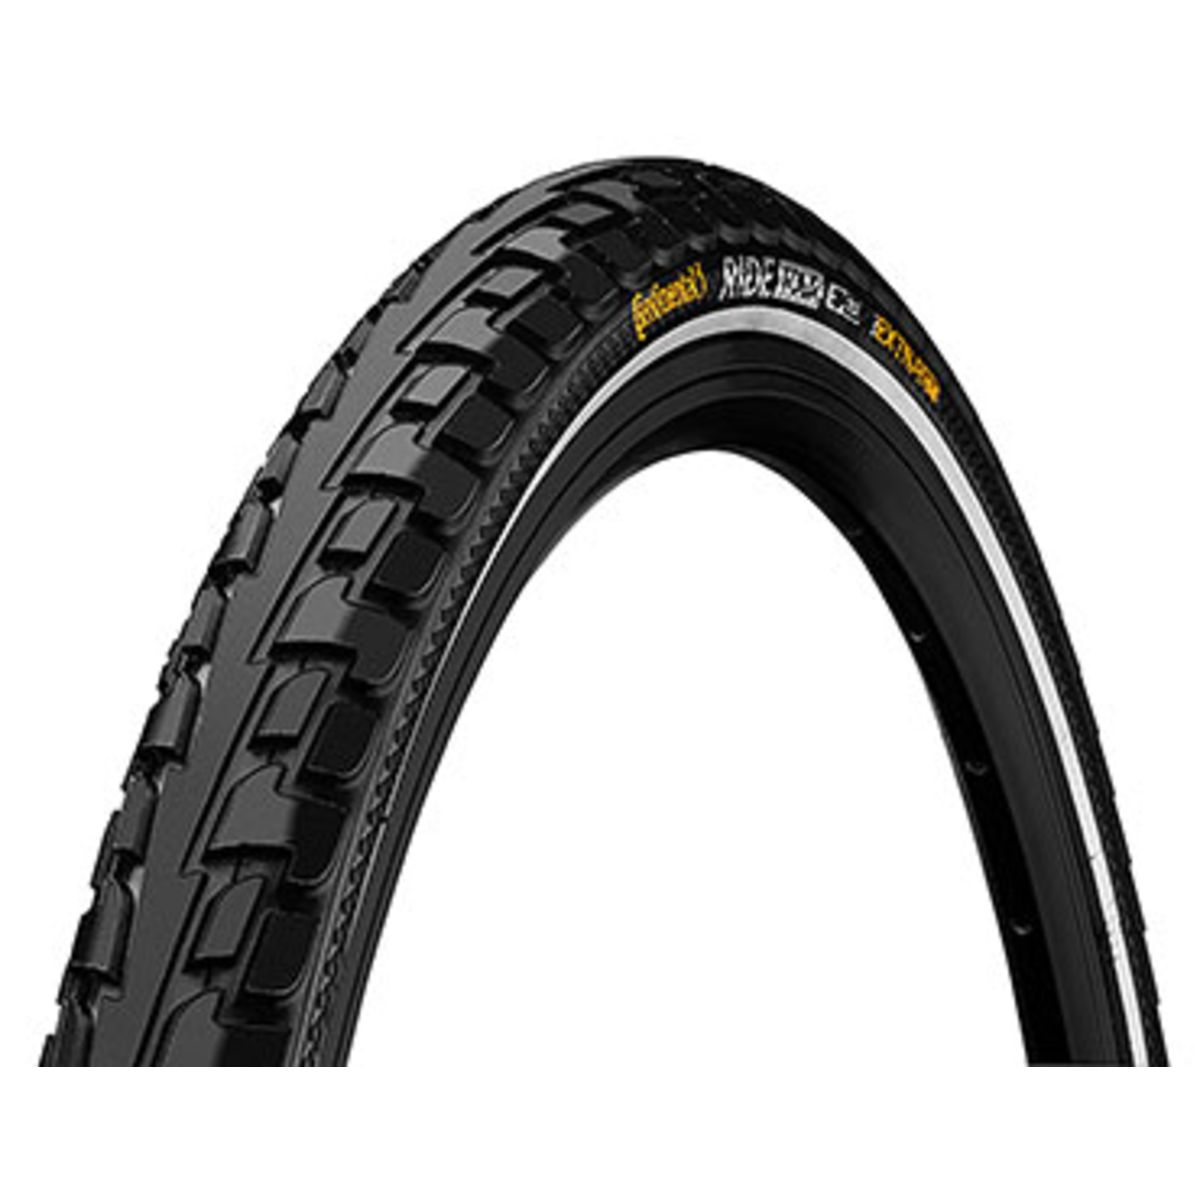 Ride Tour Reflex tyre